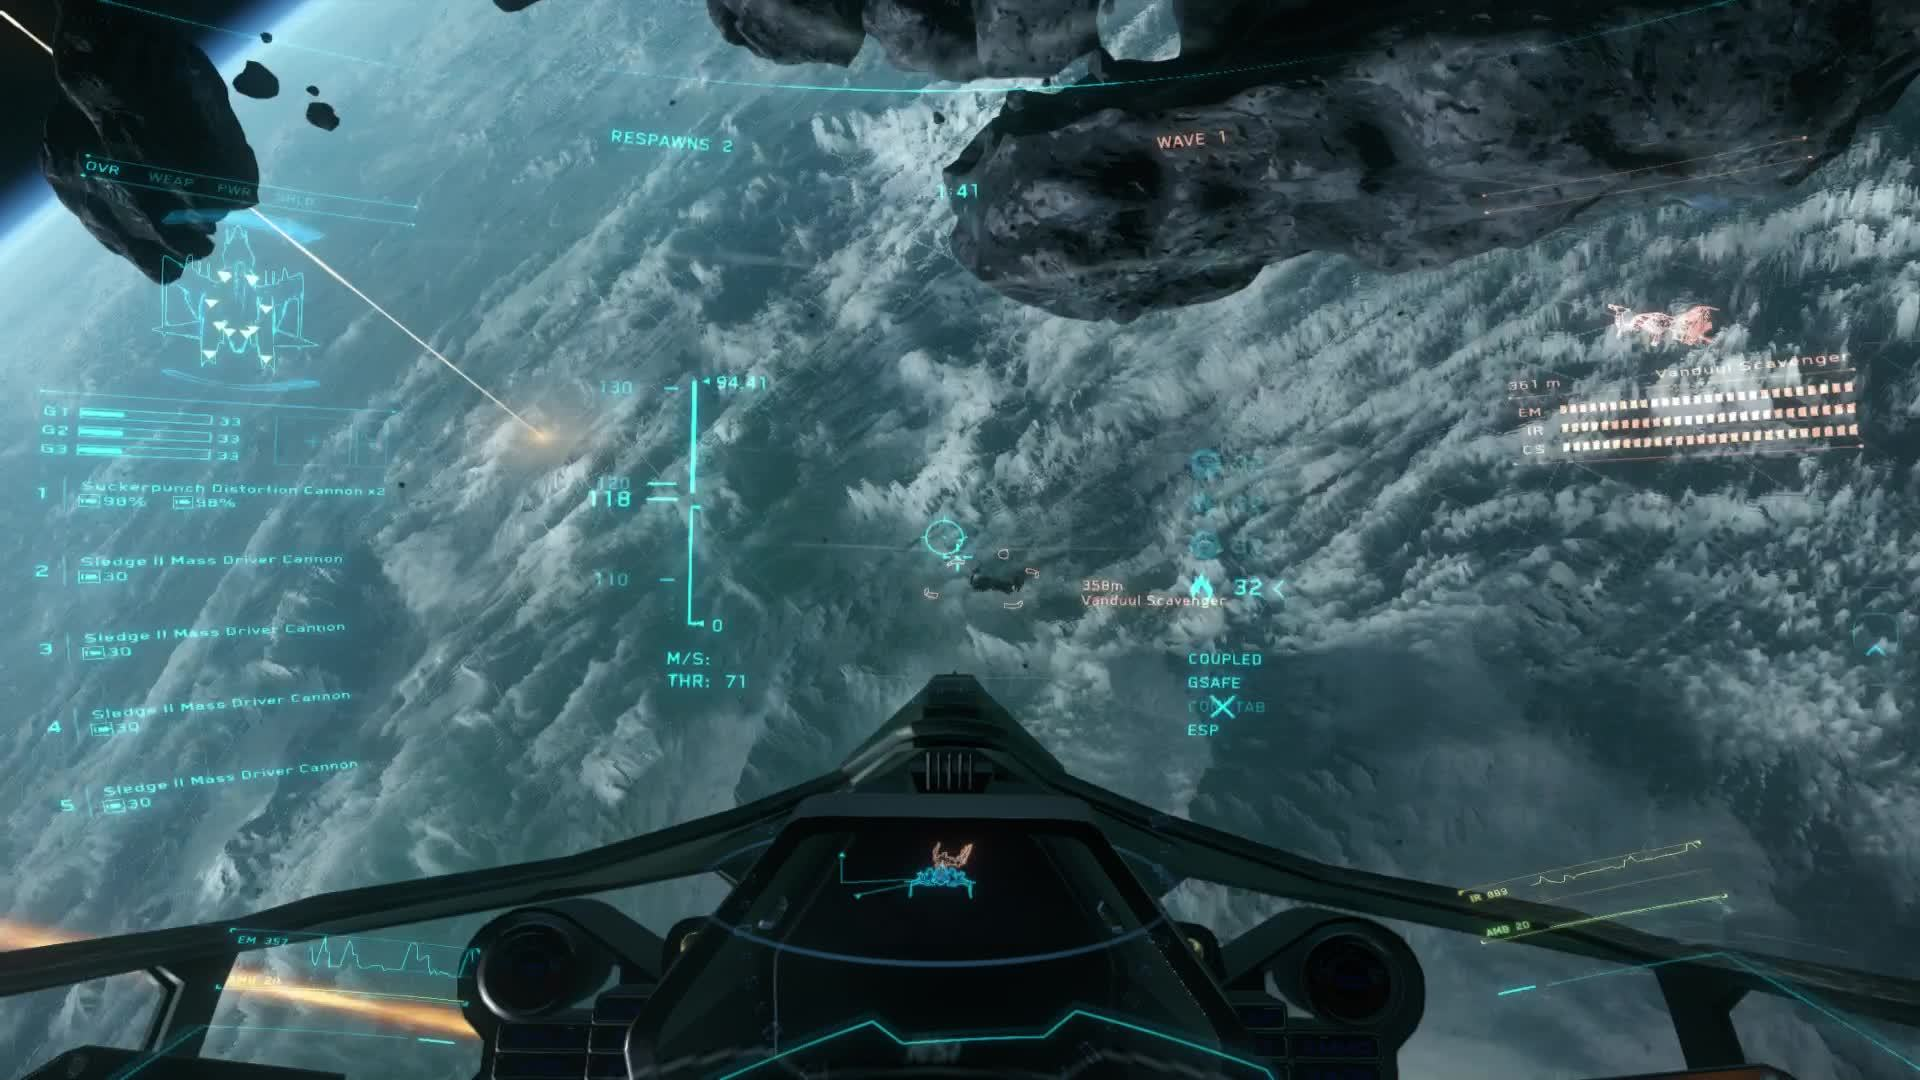 starcitizen, Star Citizen Mass Drivers GIFs